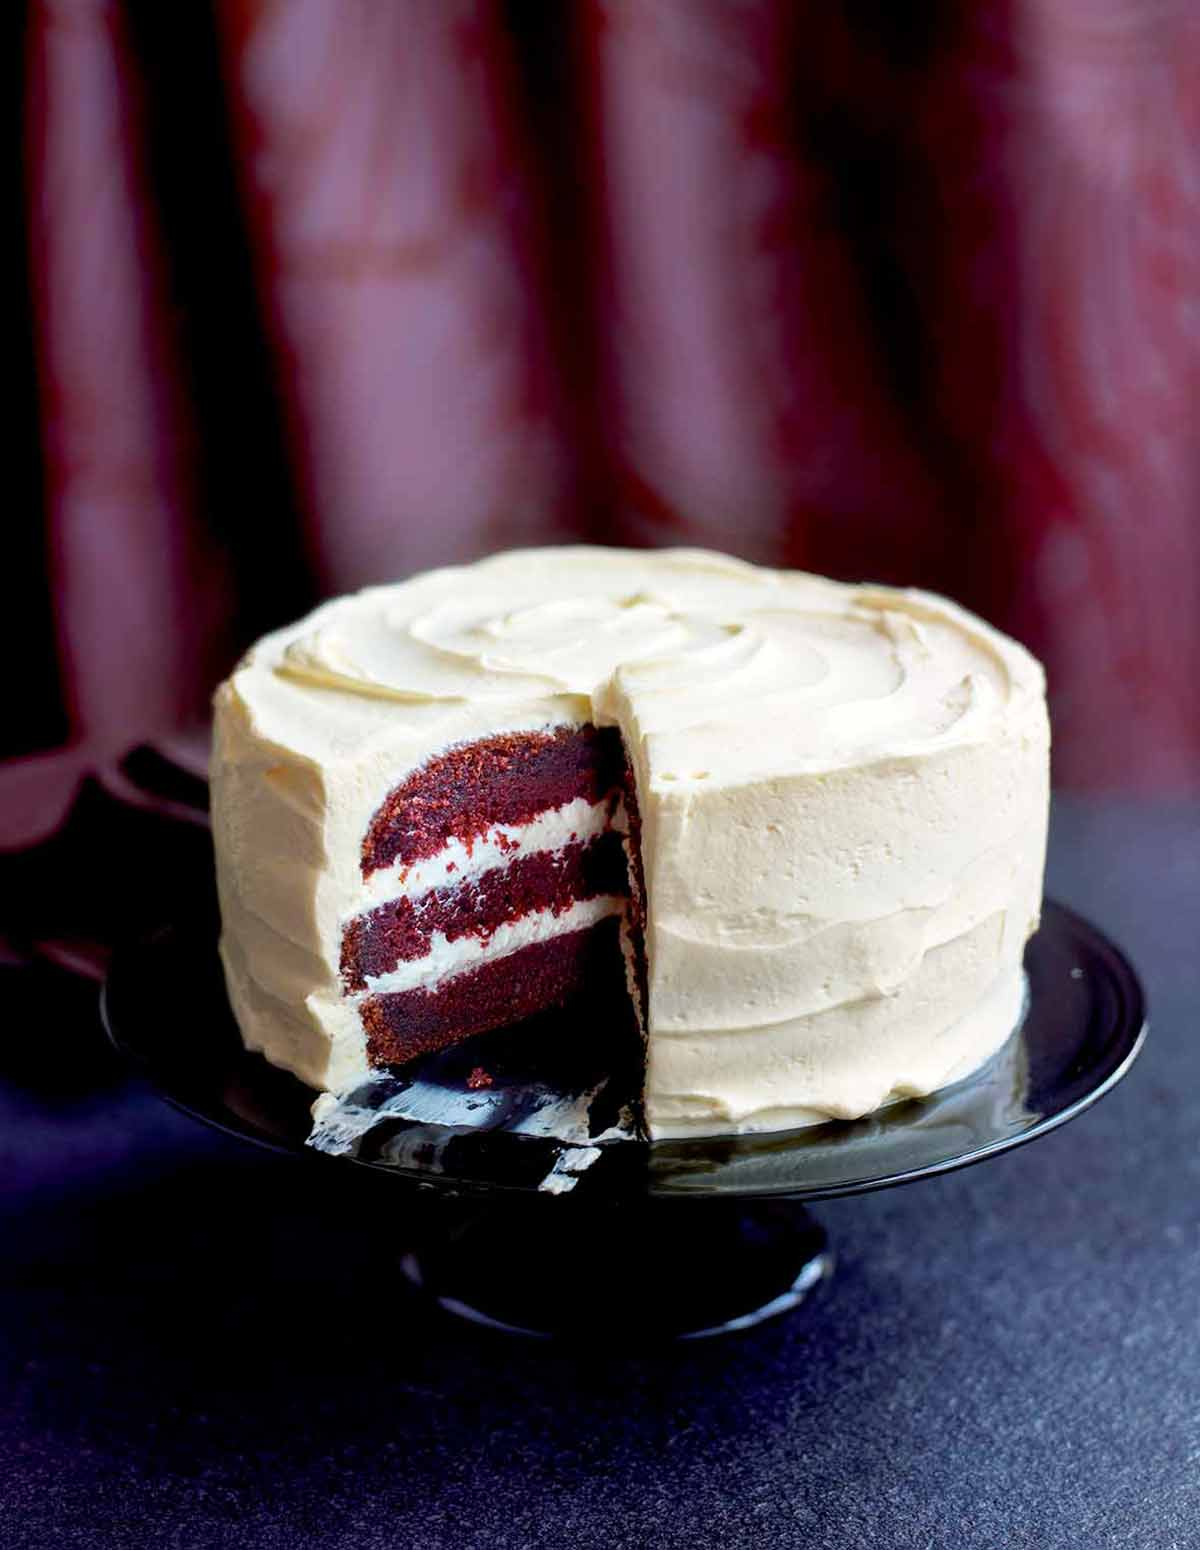 A red velvet cake with cream cheese frosting on a cake stand